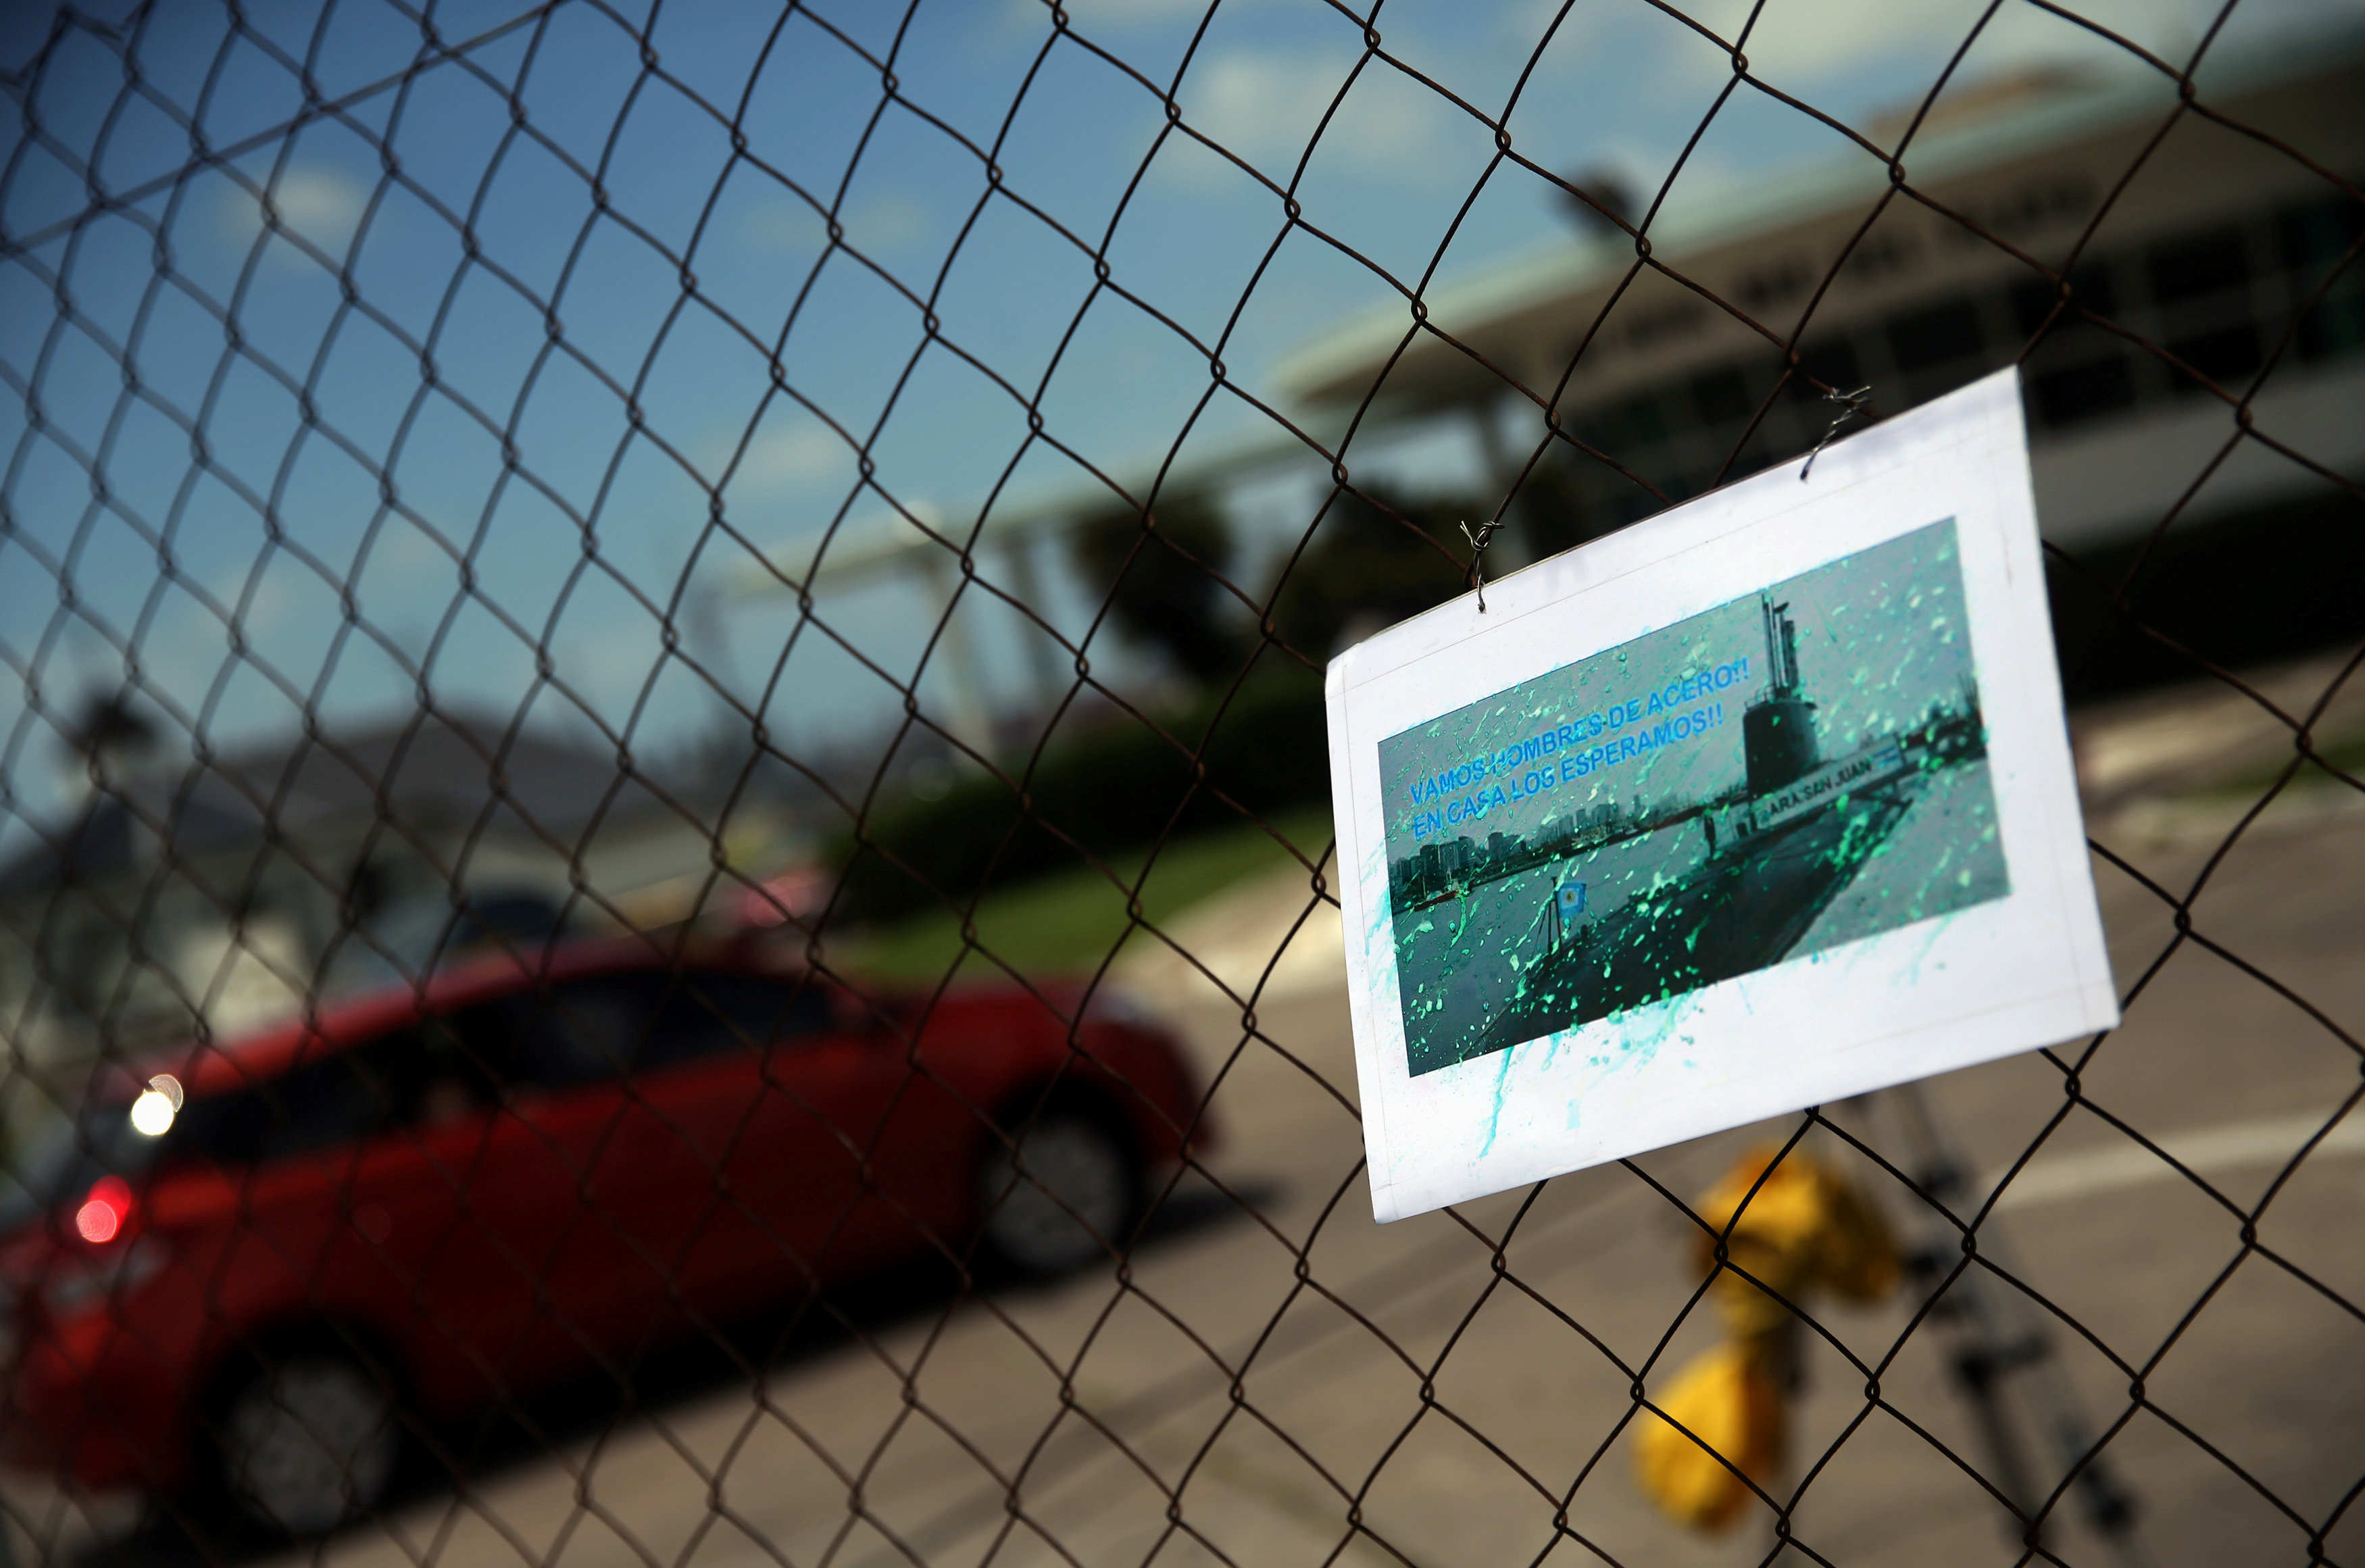 A car enters the Argentine Naval Base where the missing at sea ARA San Juan submarine sailed from as a picture of it hangs on a fence in Mar del Plata, Argentina November 19, 2017.